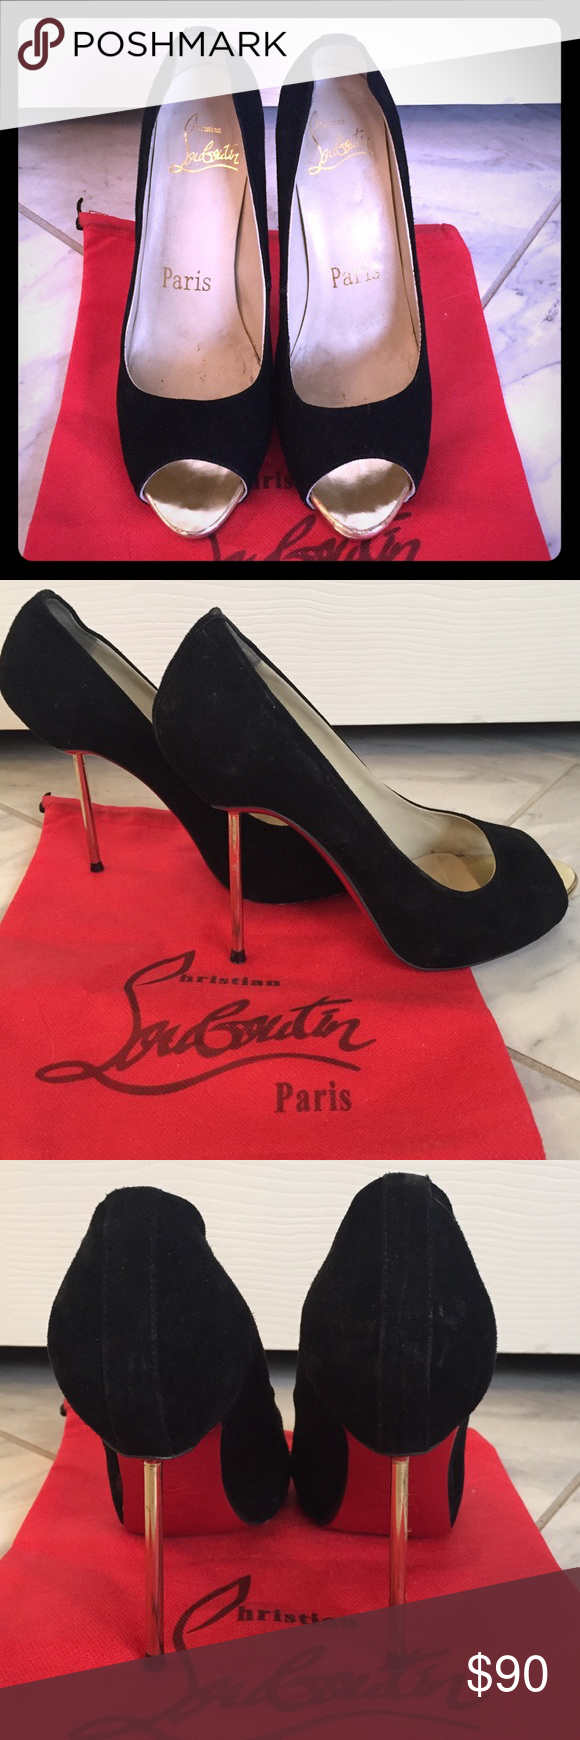 Red sole black suede peep toe stilettos 37 Red soled (see pictures for wear), black suede heels. Heels and peep toe are gold. These are a size 37 but fit more like a 38. Comes with dust bag. The heels don't have the cleanest insertion (see photo) hence the low price for these gorgeous classic shoes. Suede is in near perfect condition. Shoes Heels